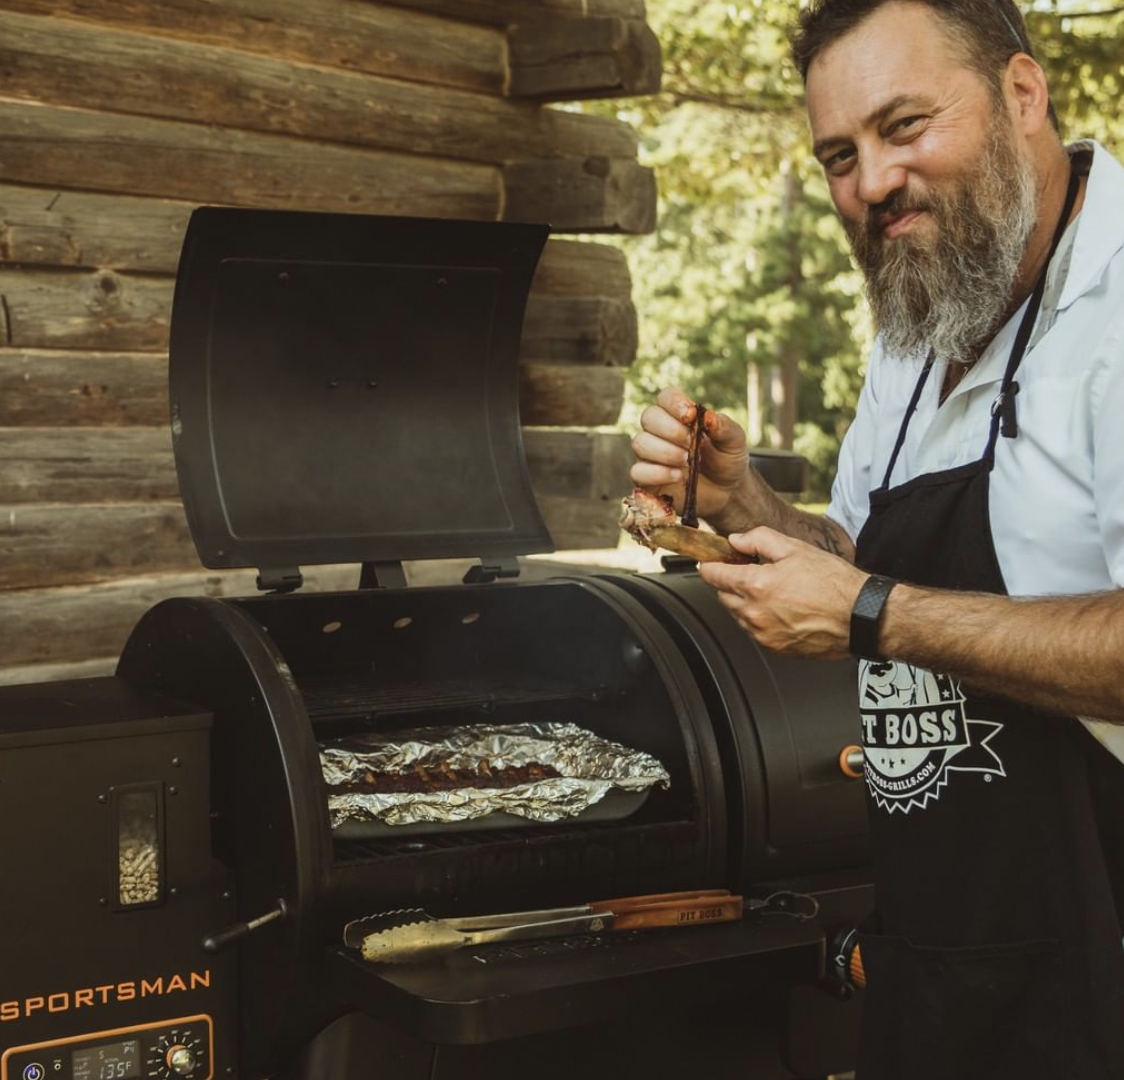 Reality TV Star Willie Robertson cooking on the BBQ